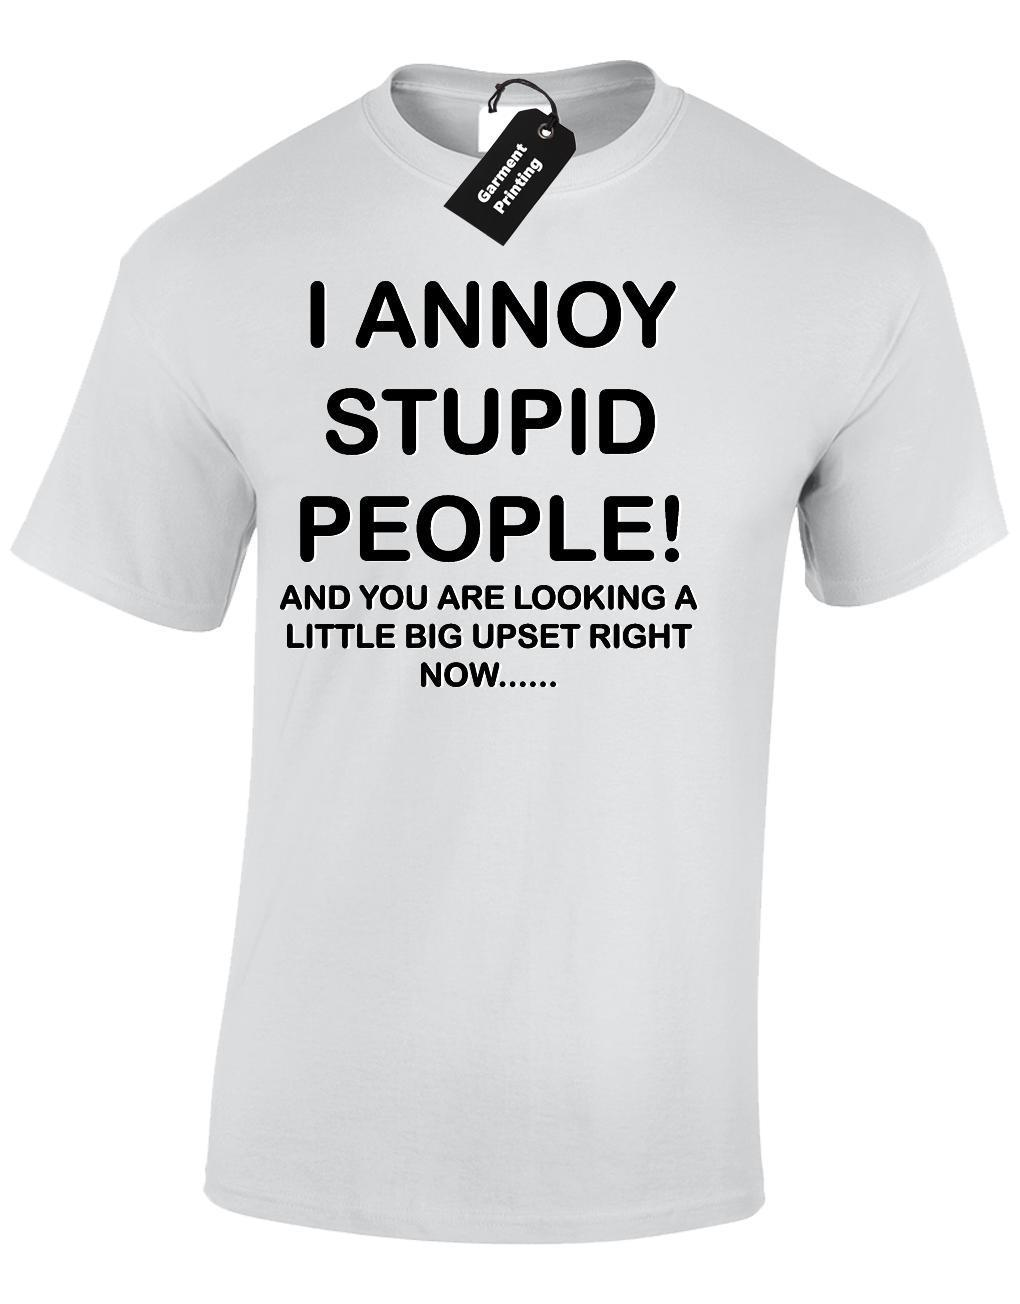 Stupid T Shirts >> I Annoy Stupid People Mens T Shirt Funny Printed Slogan Design Joke Top